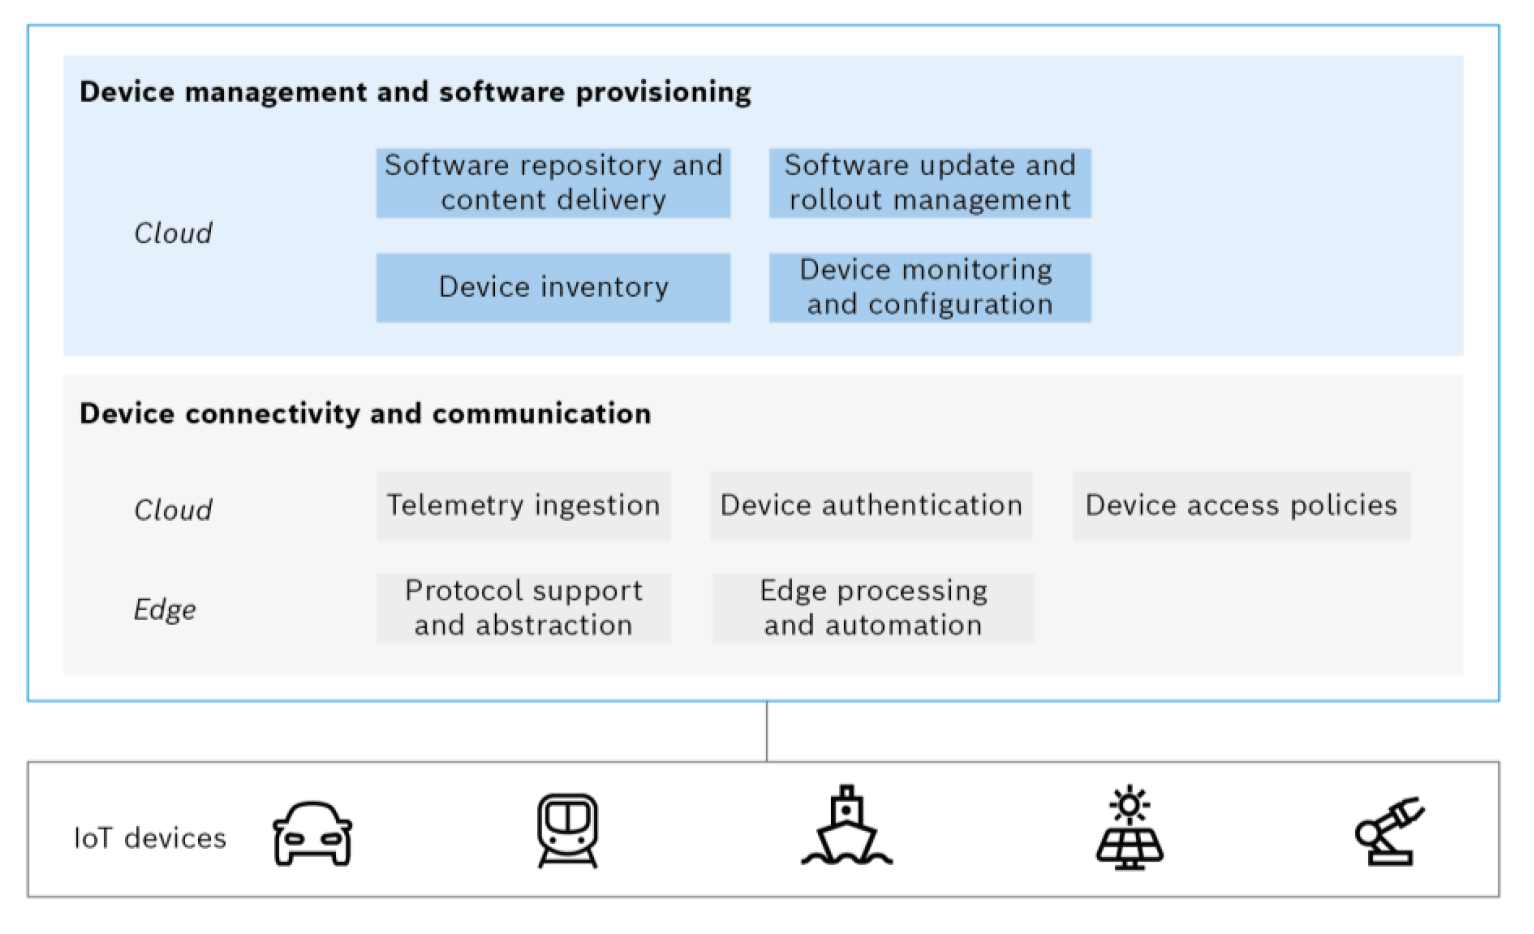 The main functions for device management and software update provisioning